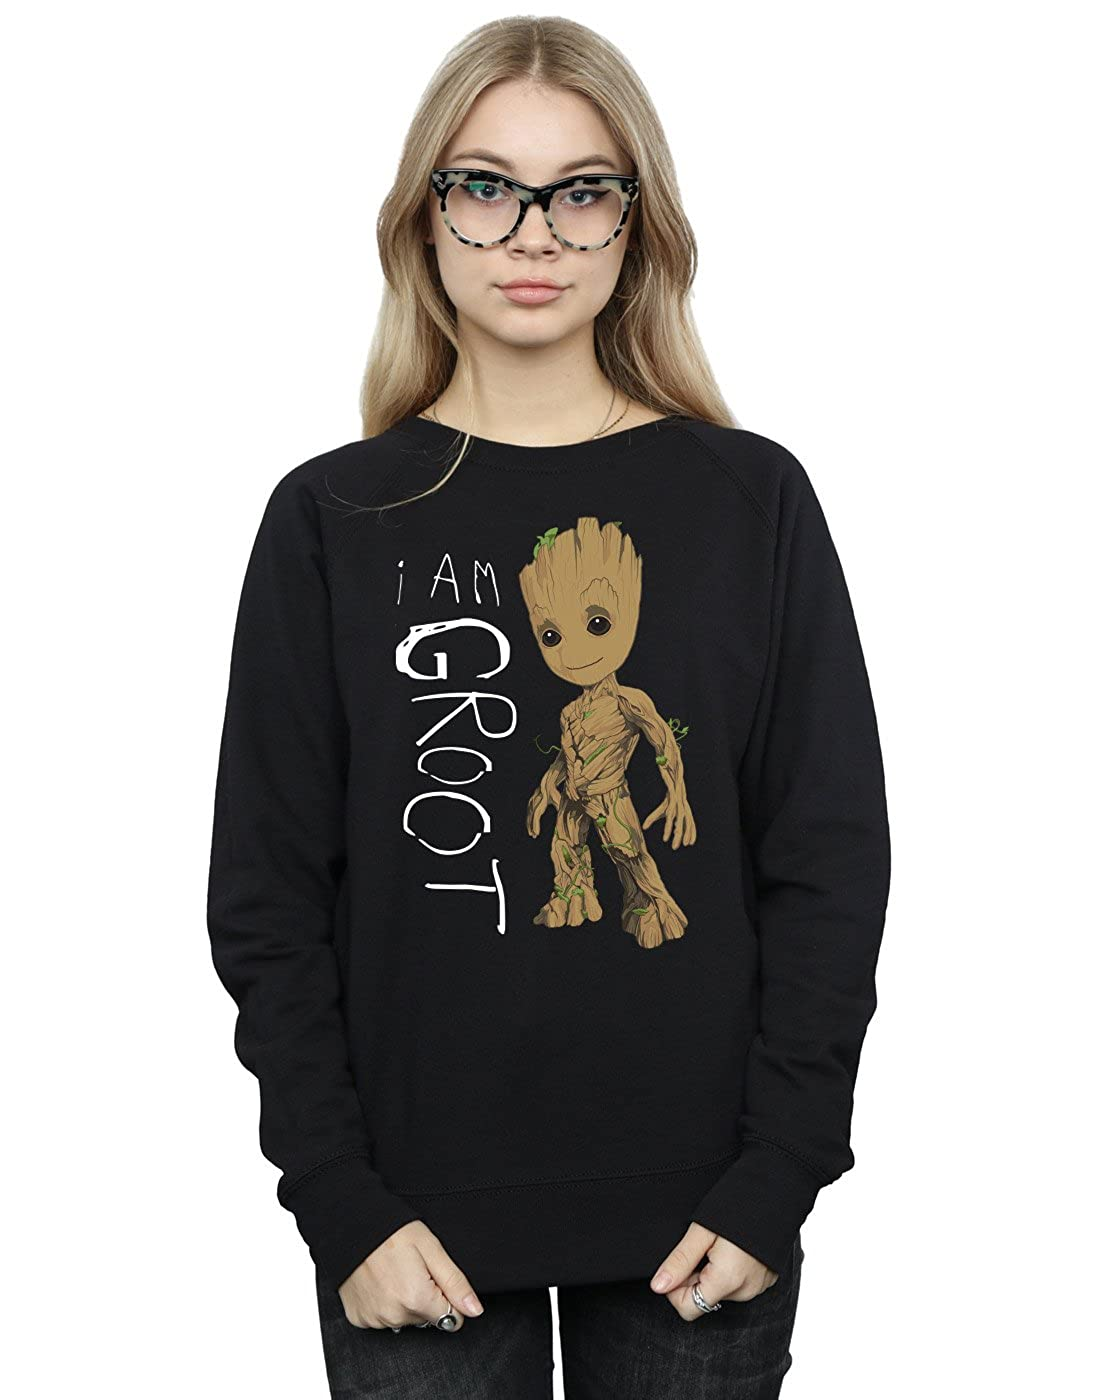 Marvel Mujer Guardians of The Galaxy I Am Groot Scribbles Camisa De Entrenamiento Negro Large